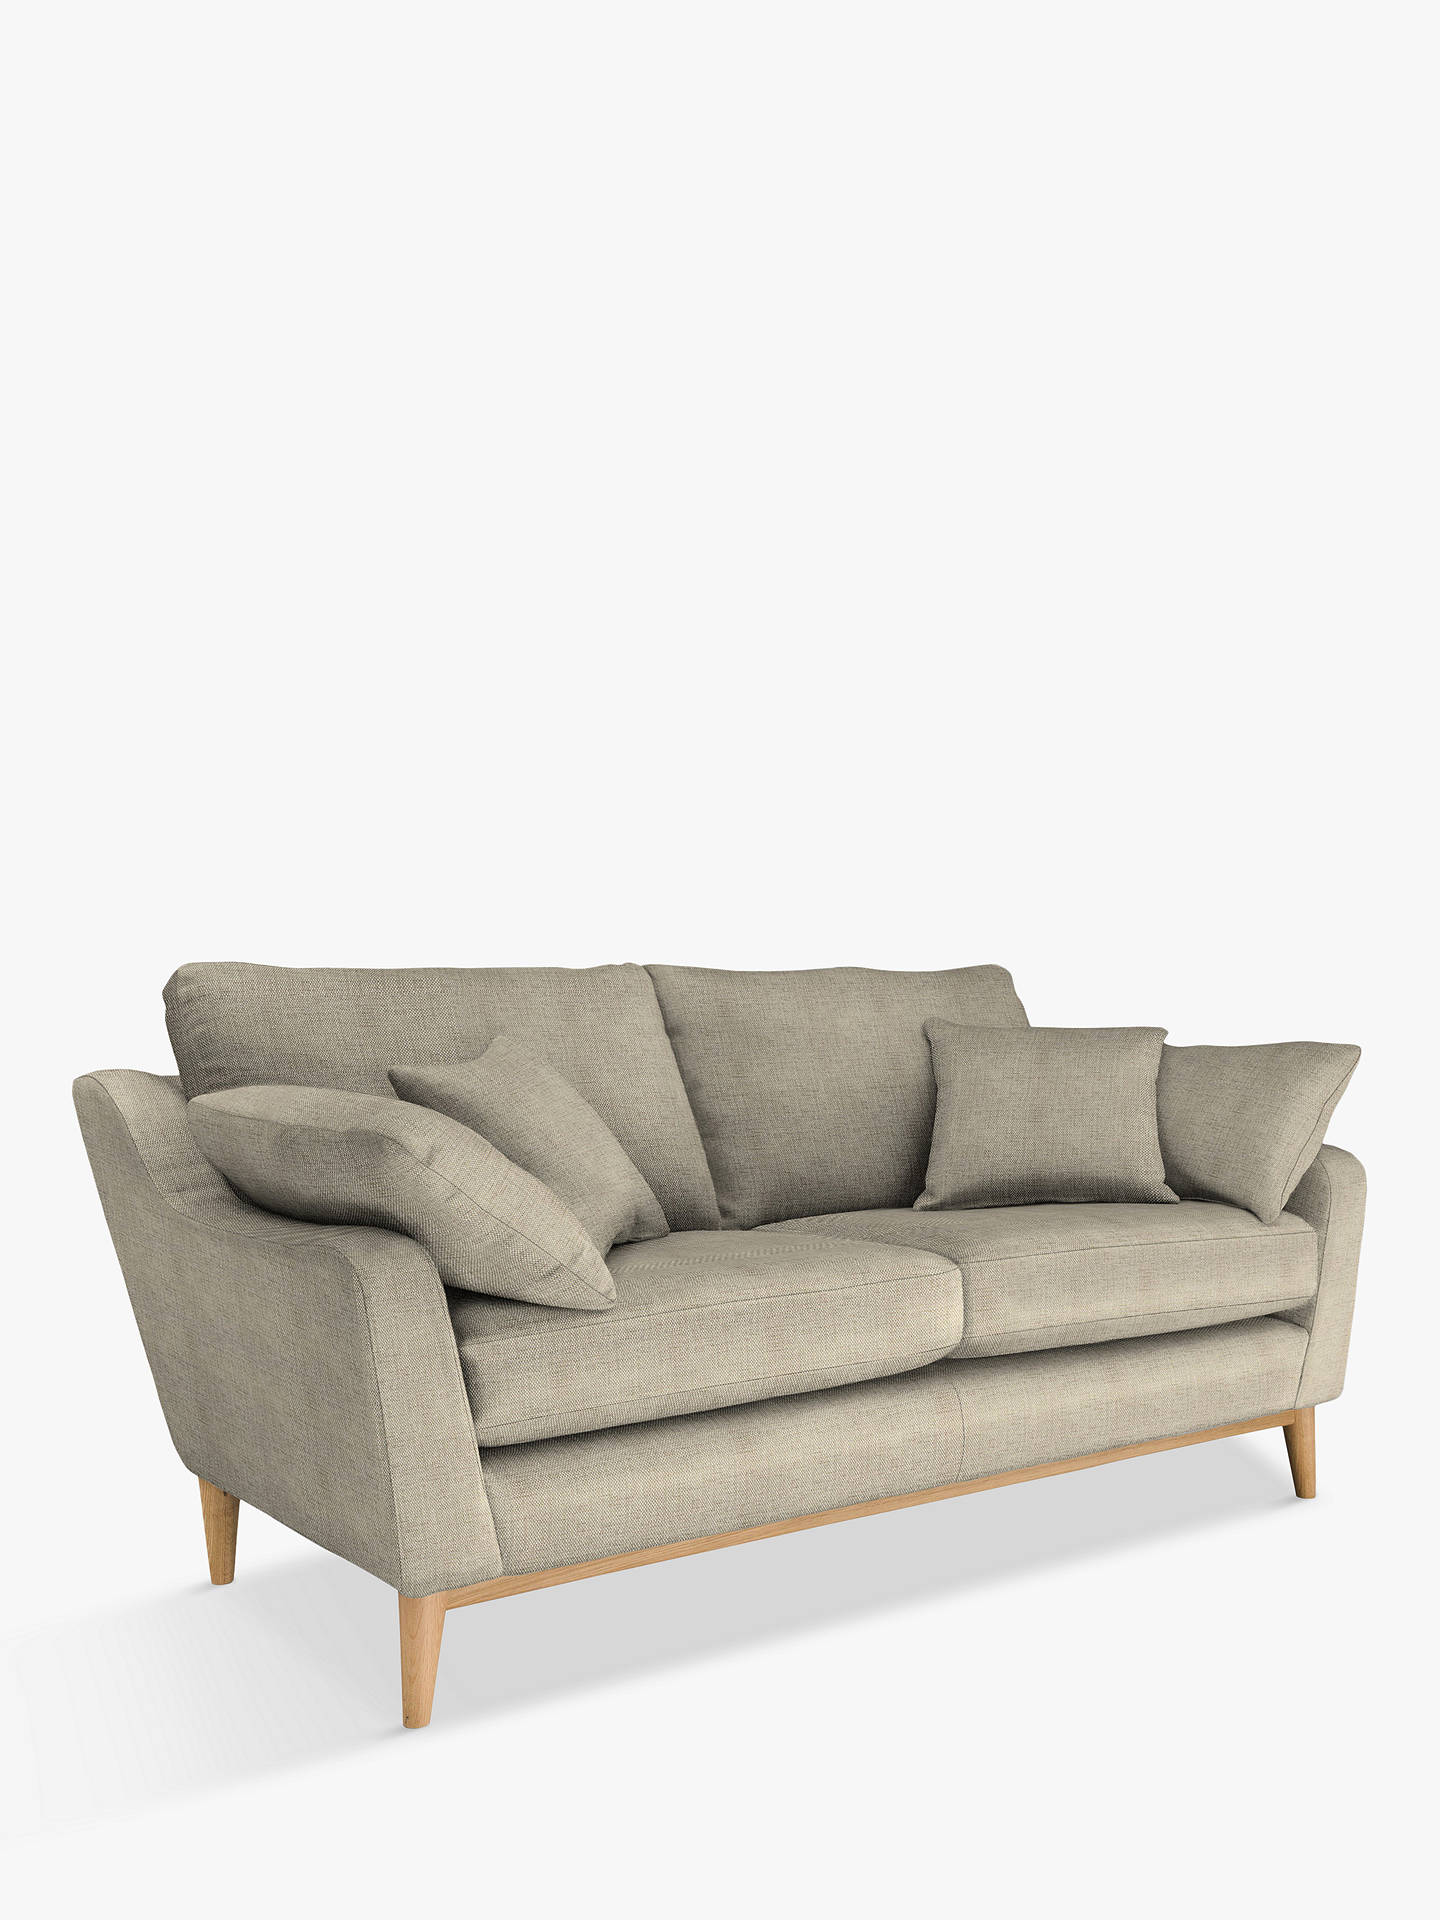 Ercol For John Lewis Nto 3 Seater Sofa Maria Oyster Online At Johnlewis Com